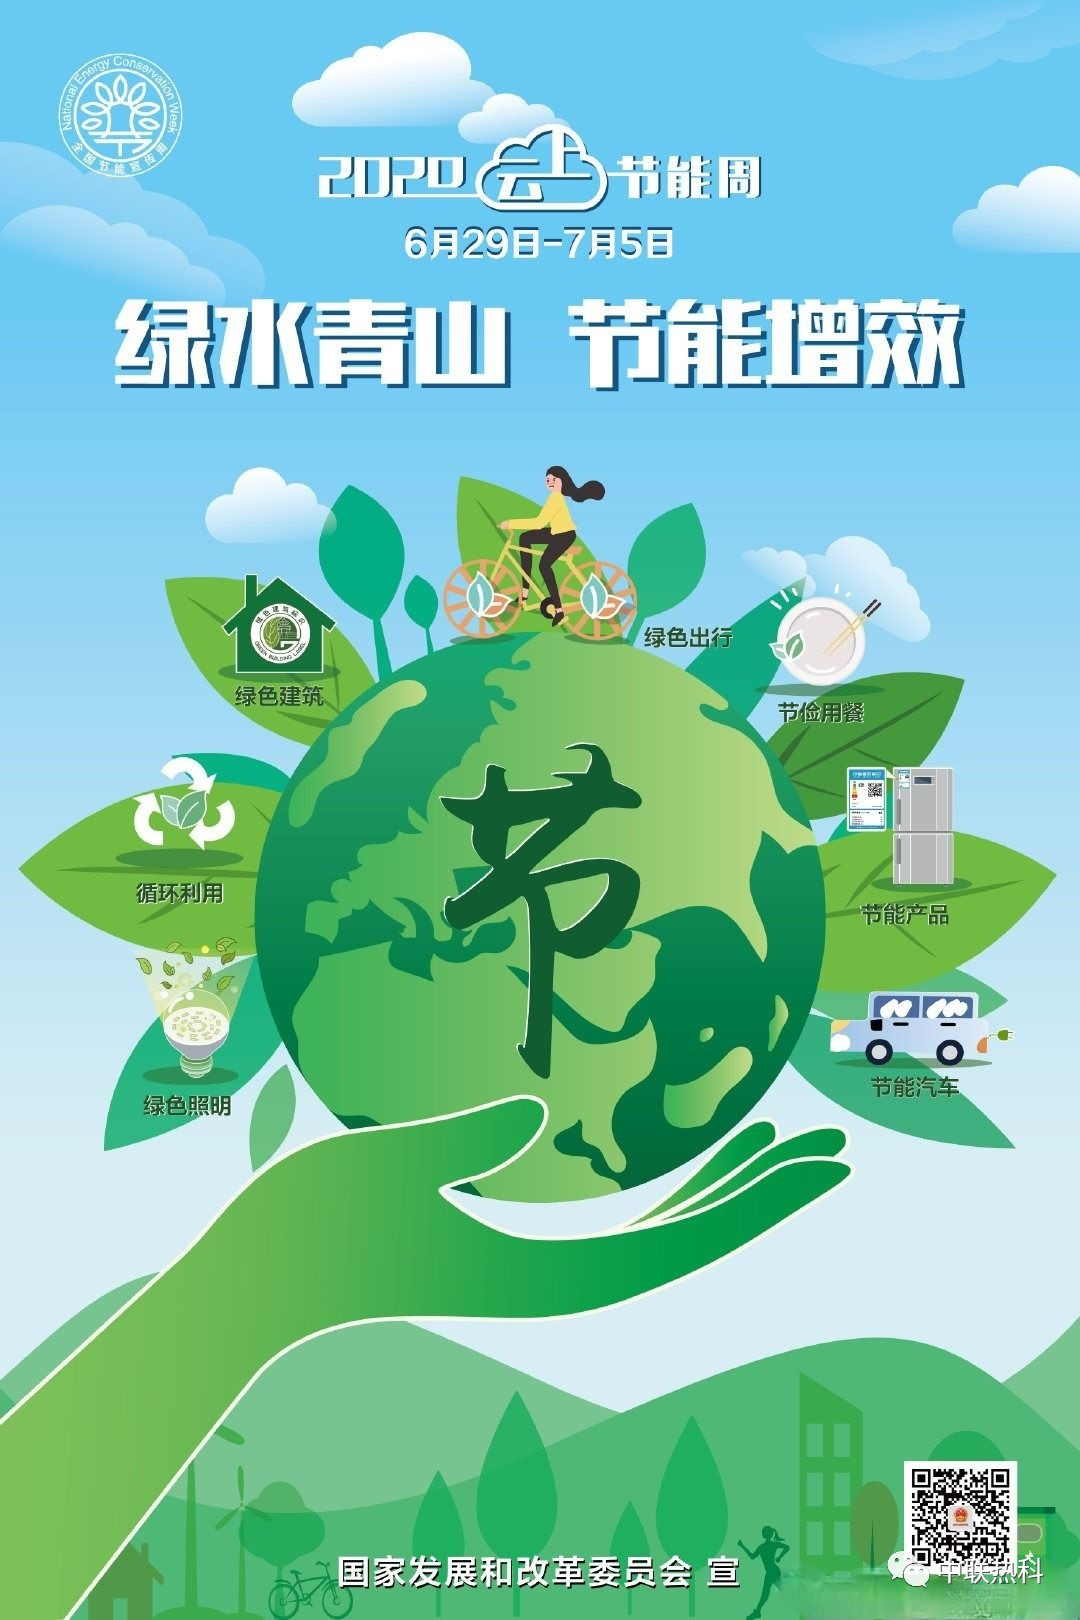 2020 National Energy Conservation Awareness Week, Zhonglian Thermal in action!